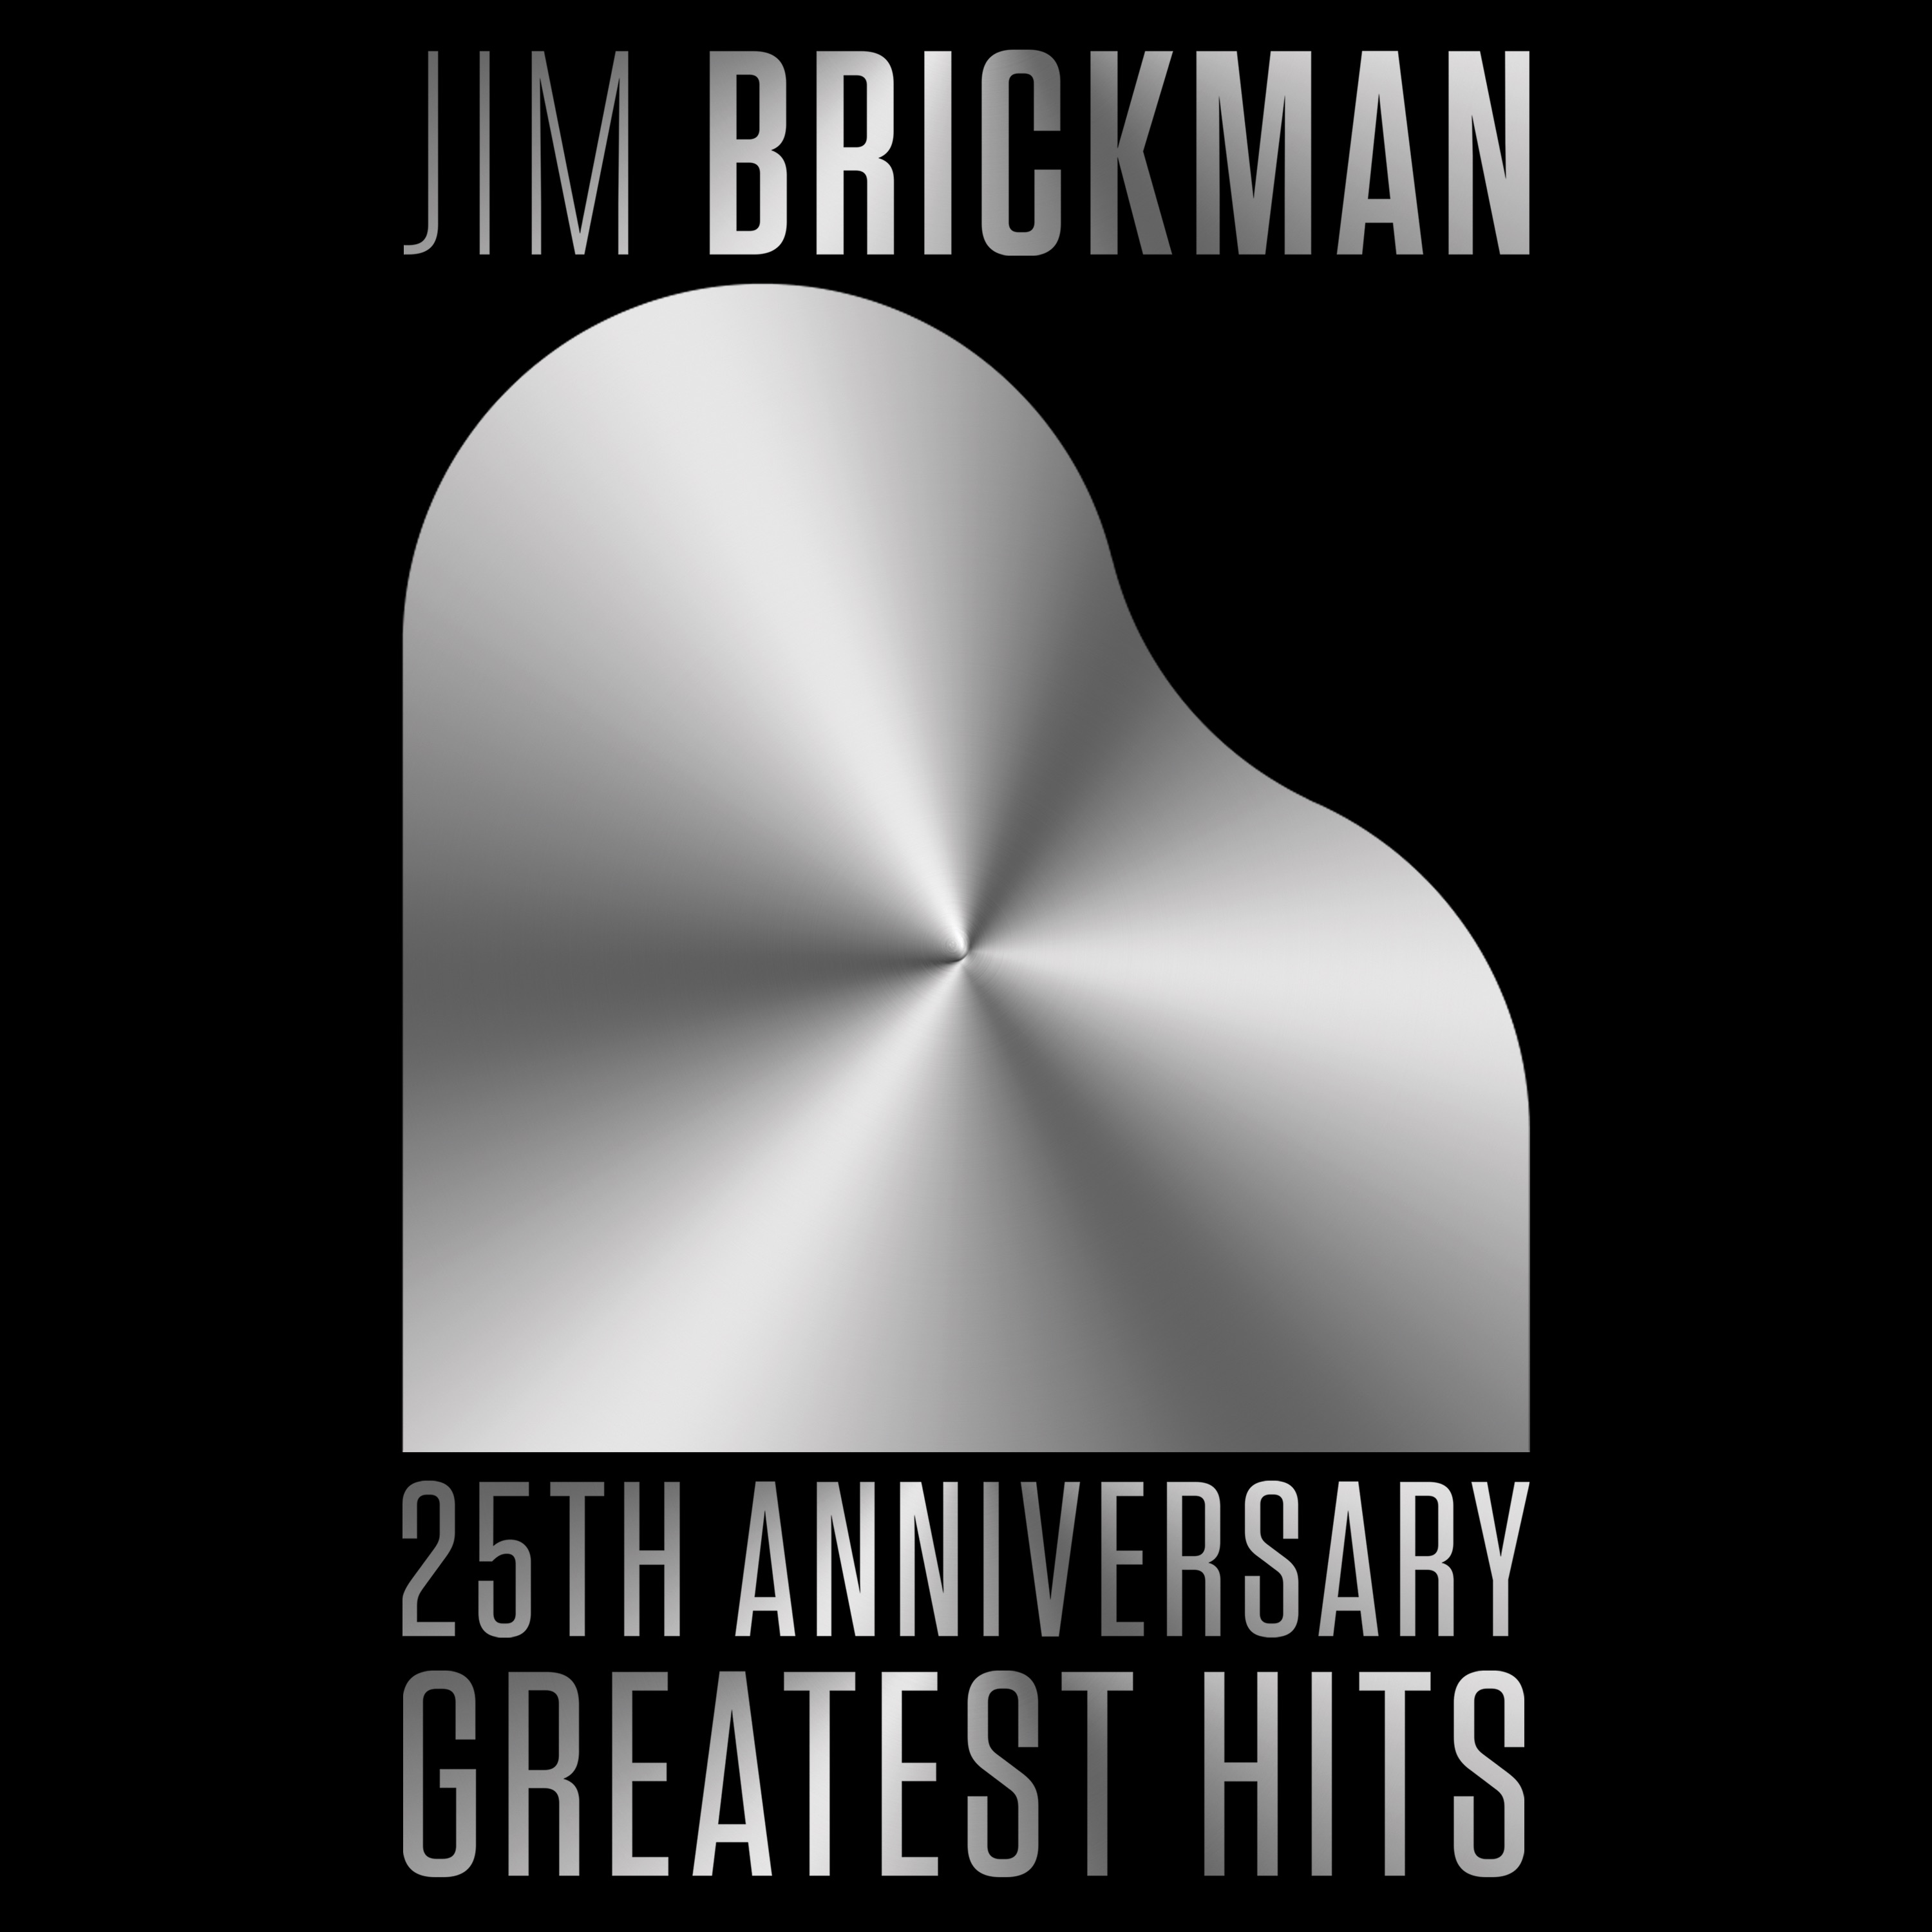 25TH ANNIVERSARY GREATEST HITS